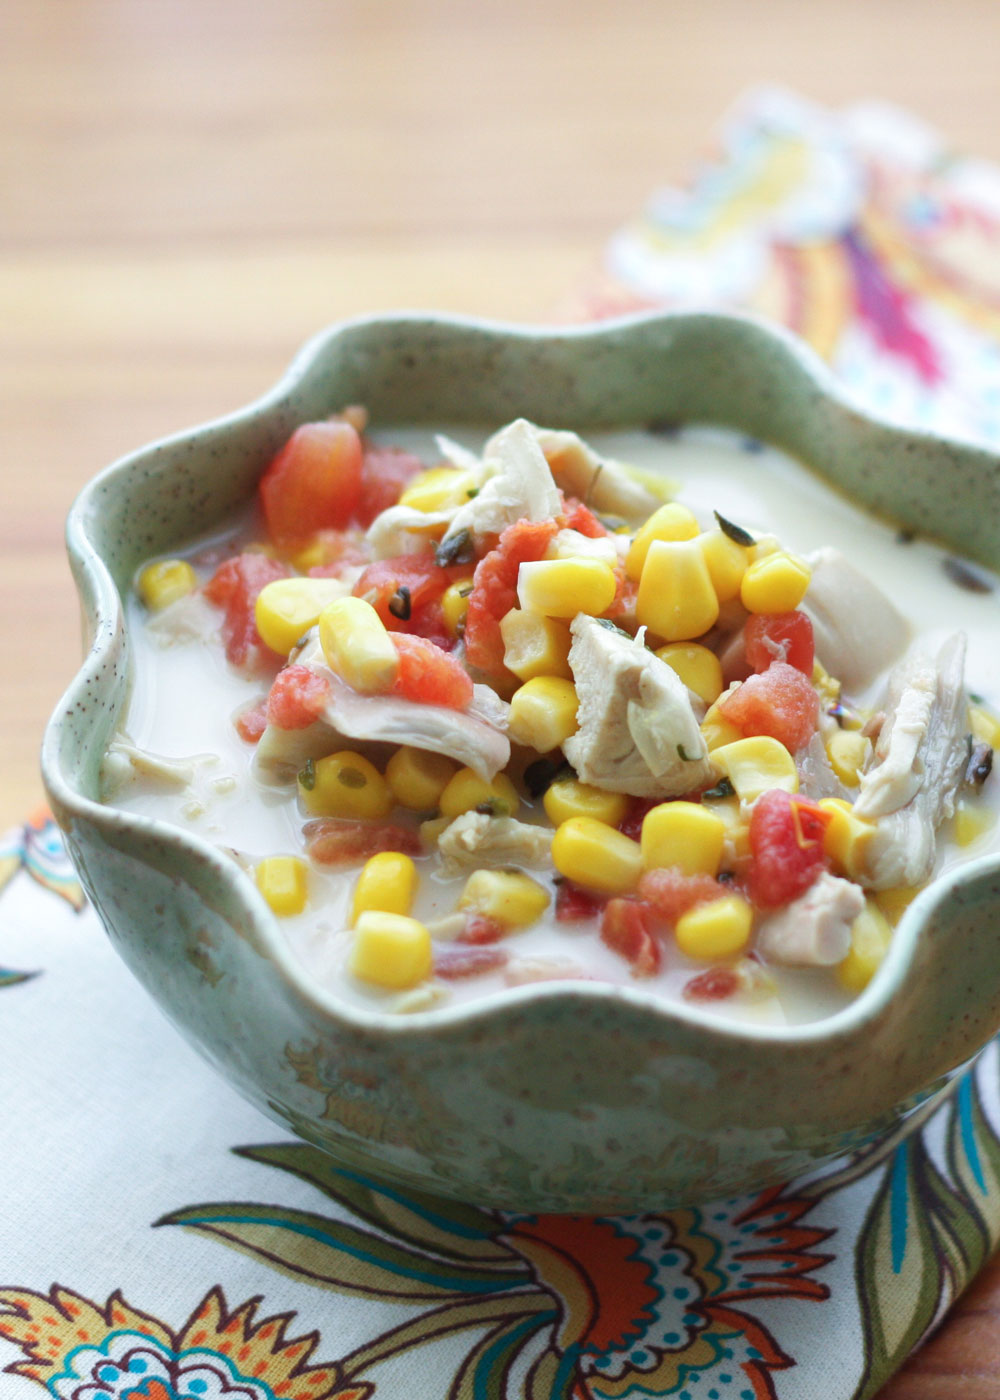 Creamy Mexican Chicken and Corn Soup recipe by Barefeet In The Kitchen